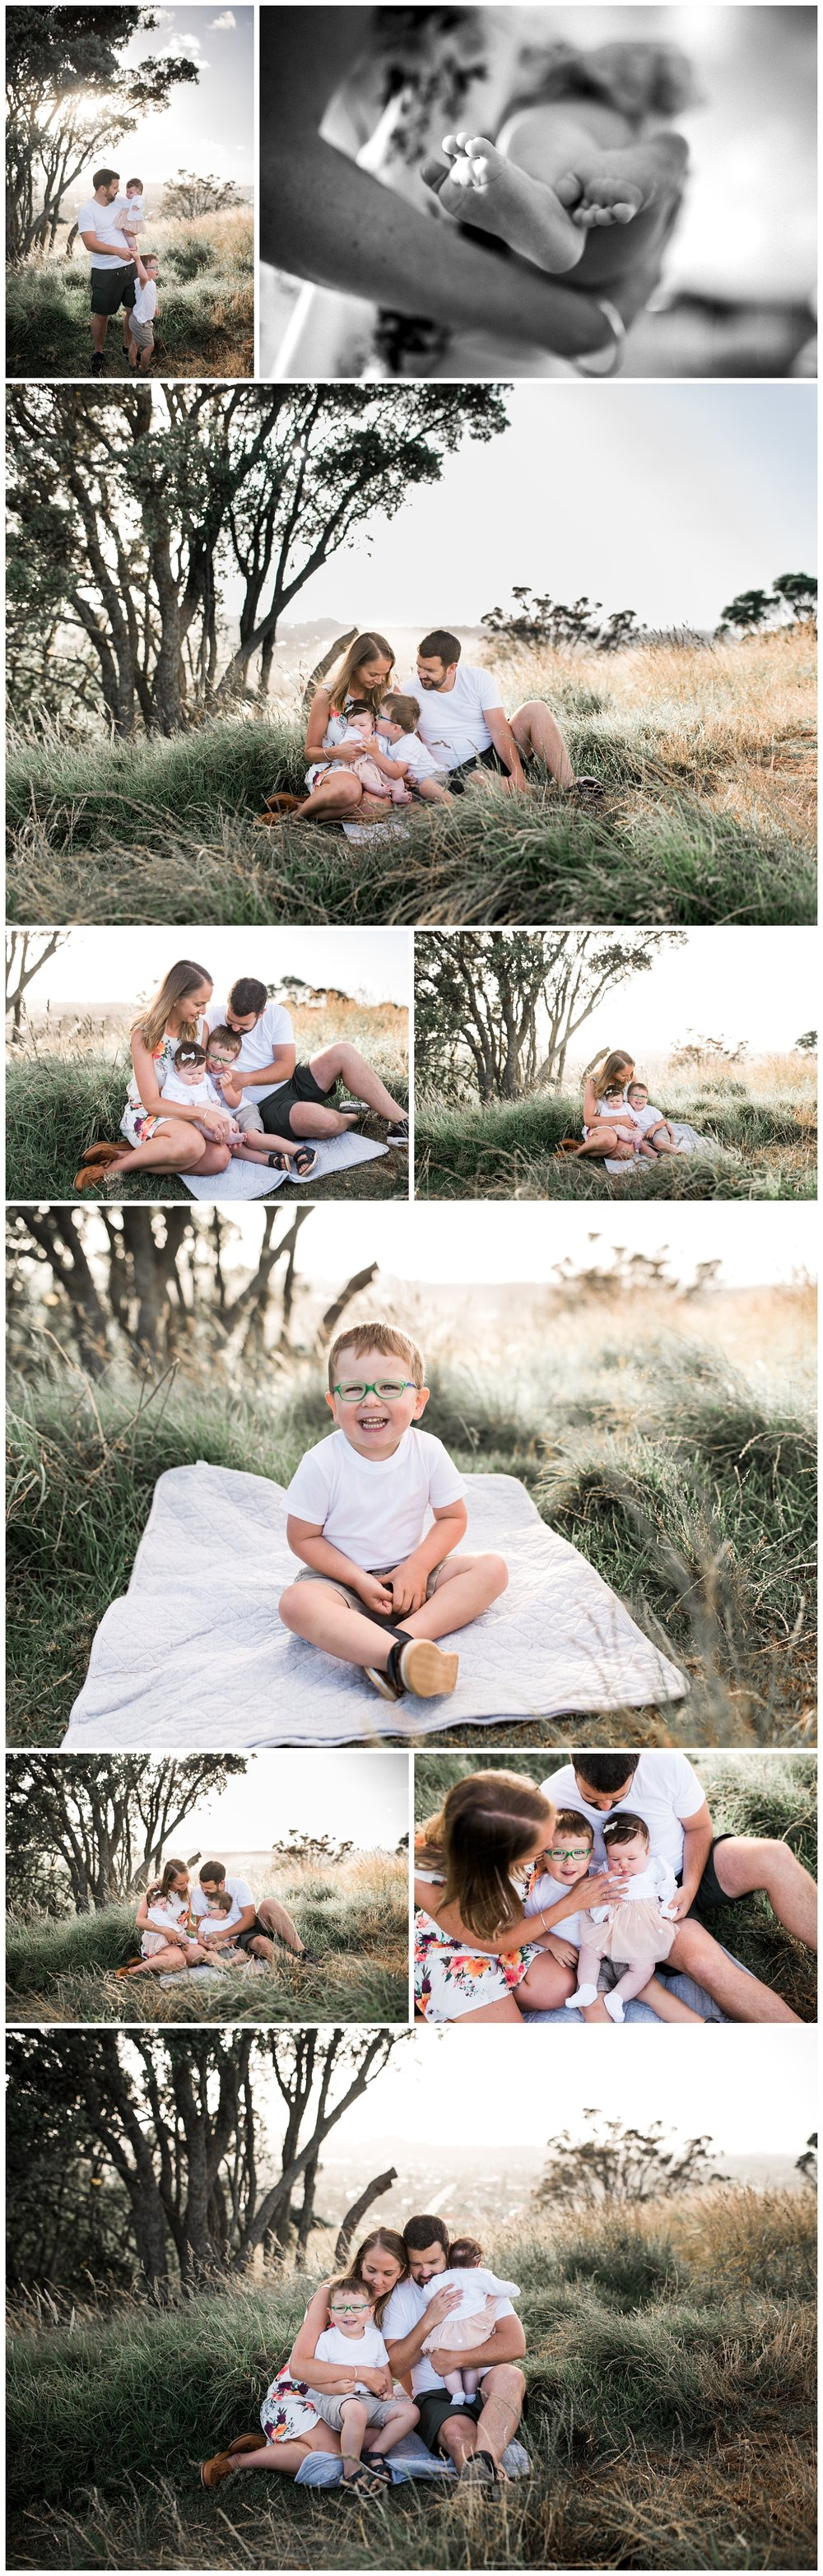 lifestyle family photography session melbourne.jpg